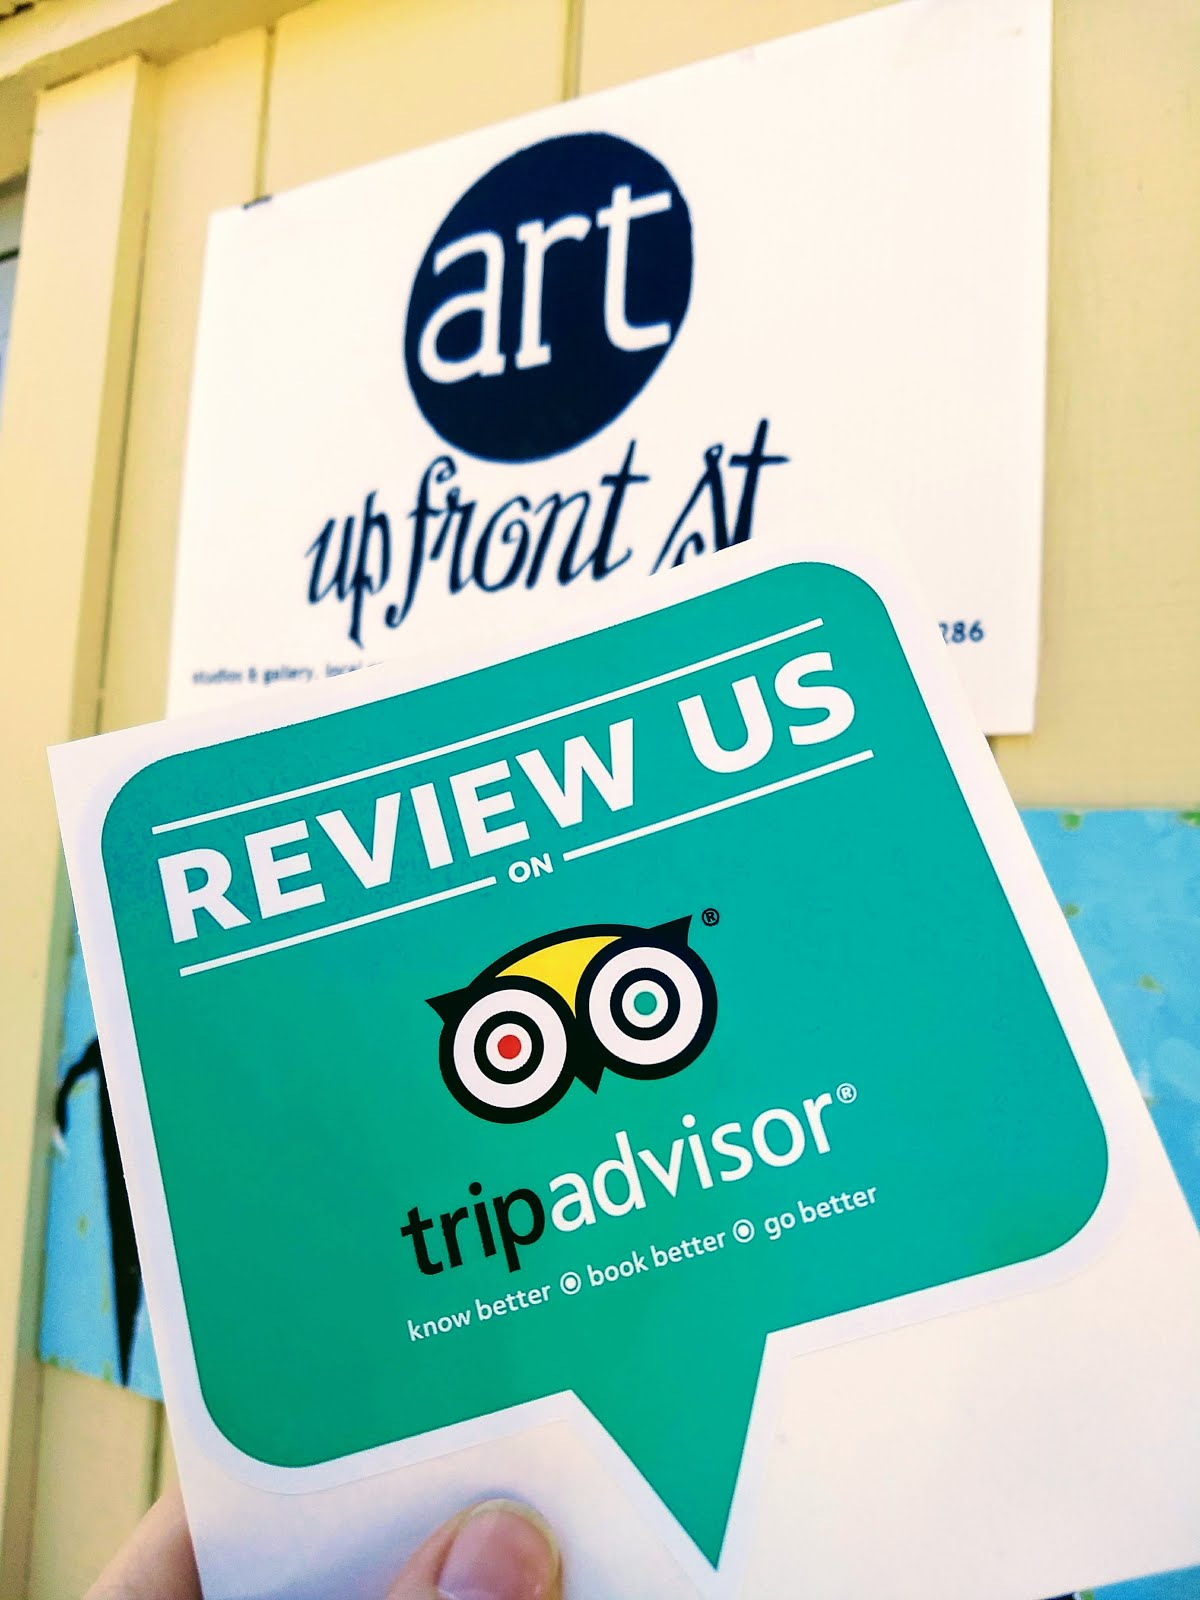 THE STUDIO IS ON TRIPADVISOR